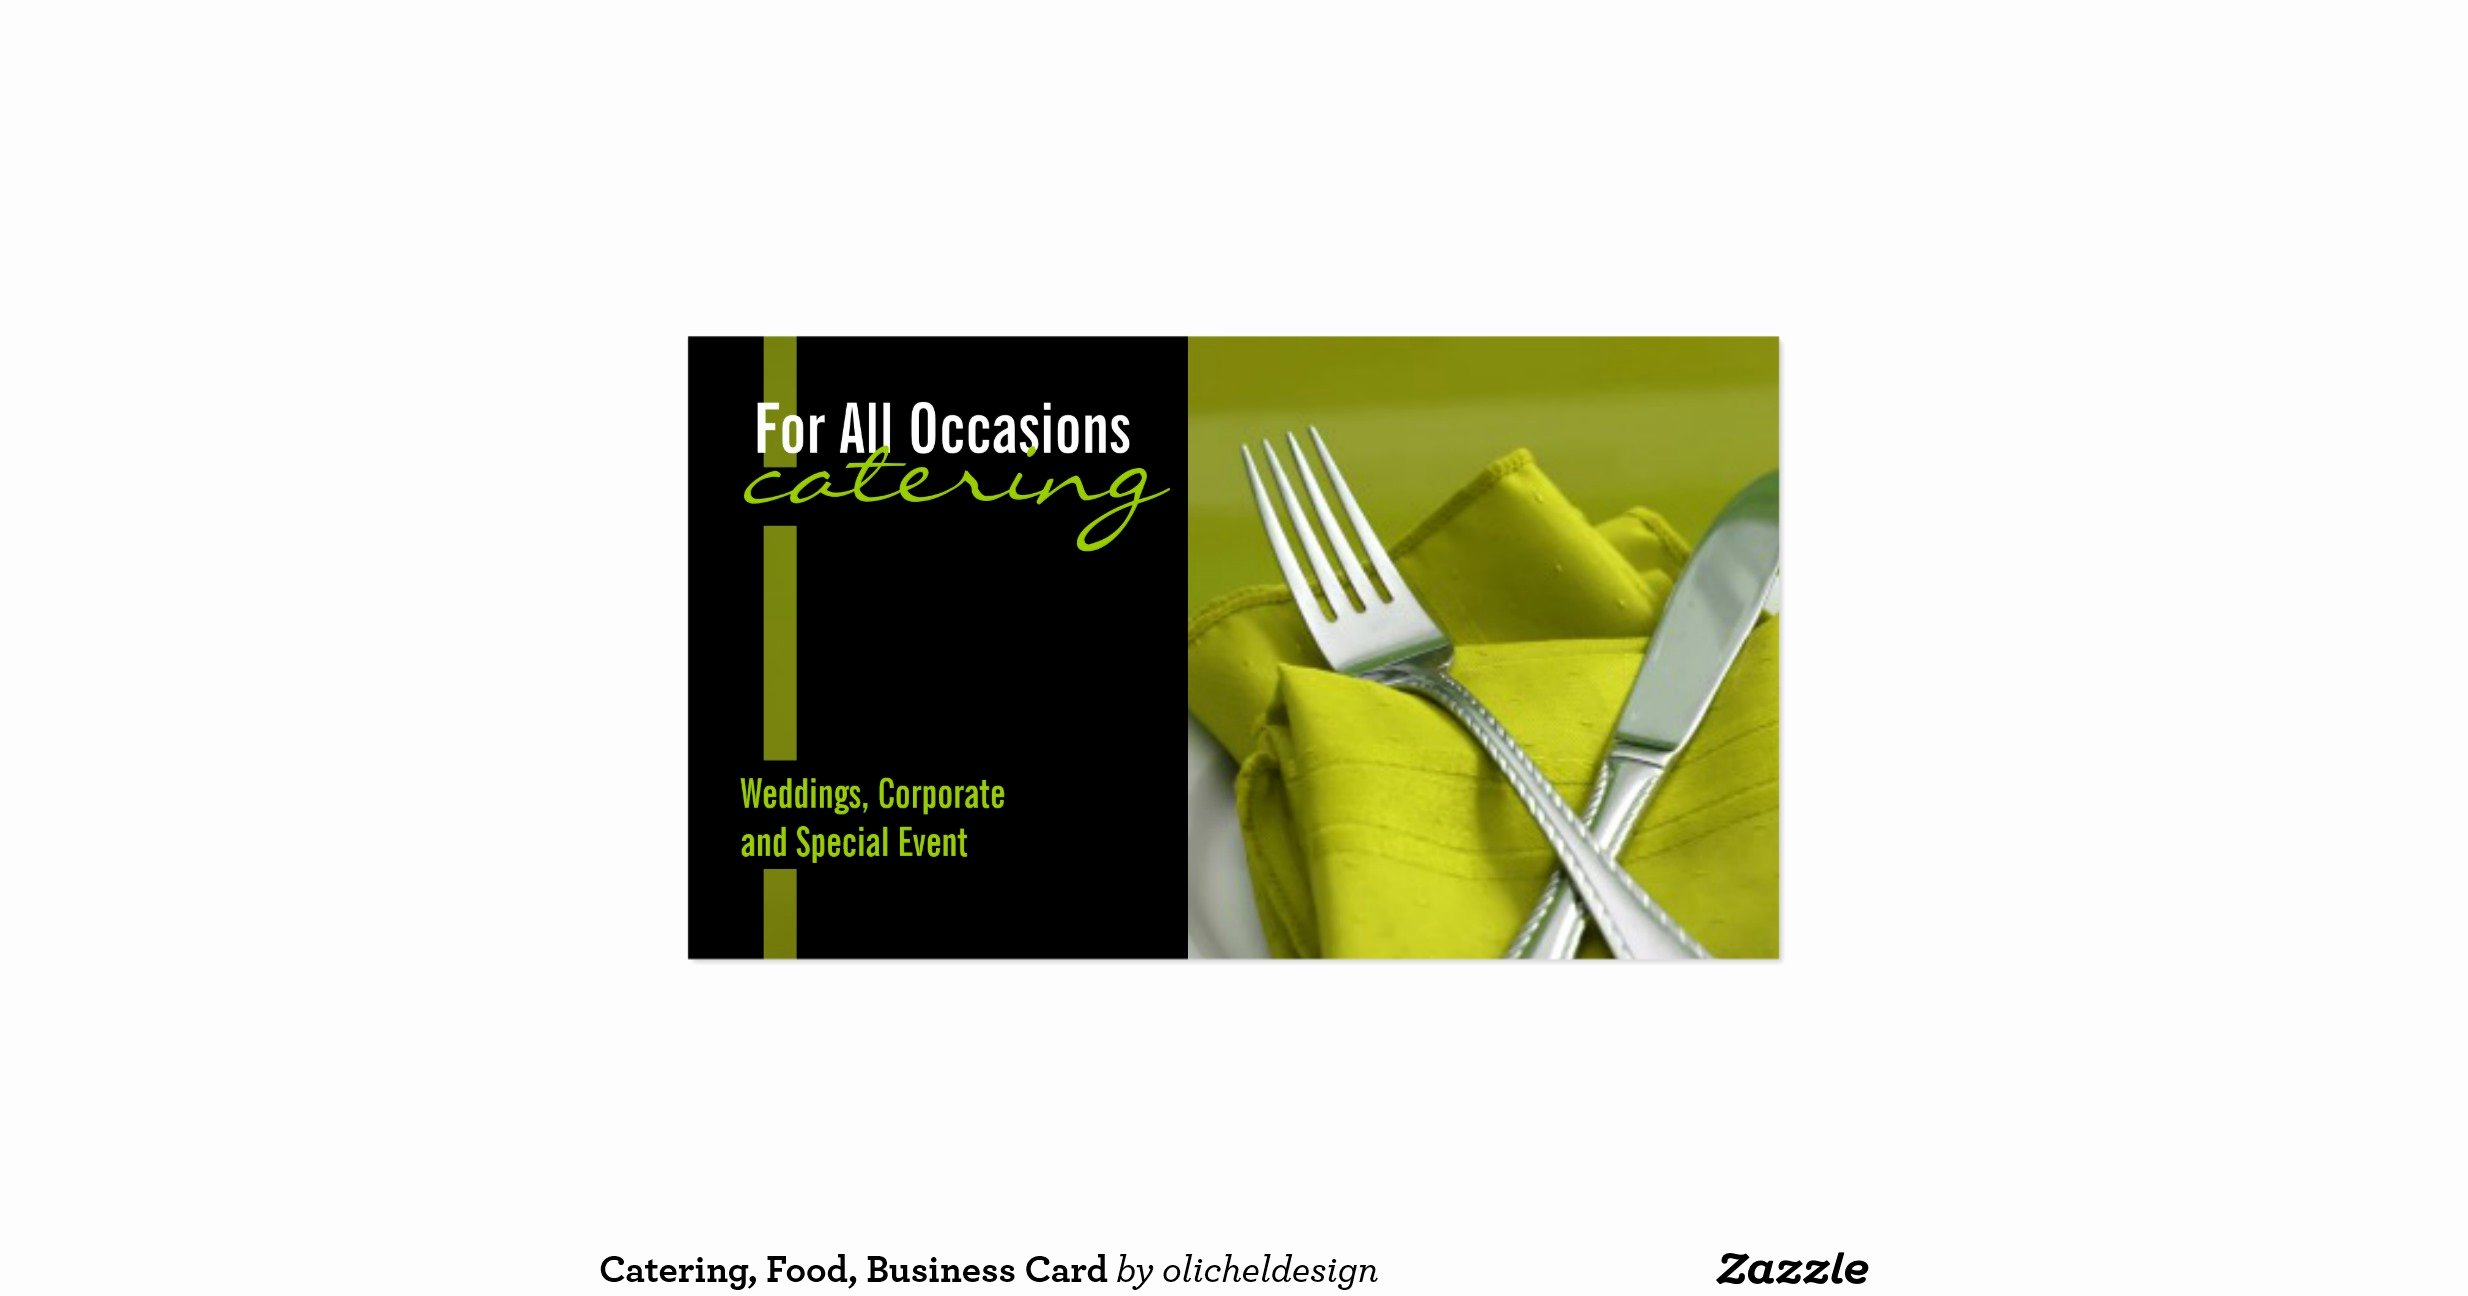 Catering Business Card Ideas Luxury Catering Food Business Card R1758e Cb464a8fc F4d287b8 I579t 8byvr 1200 View Padding